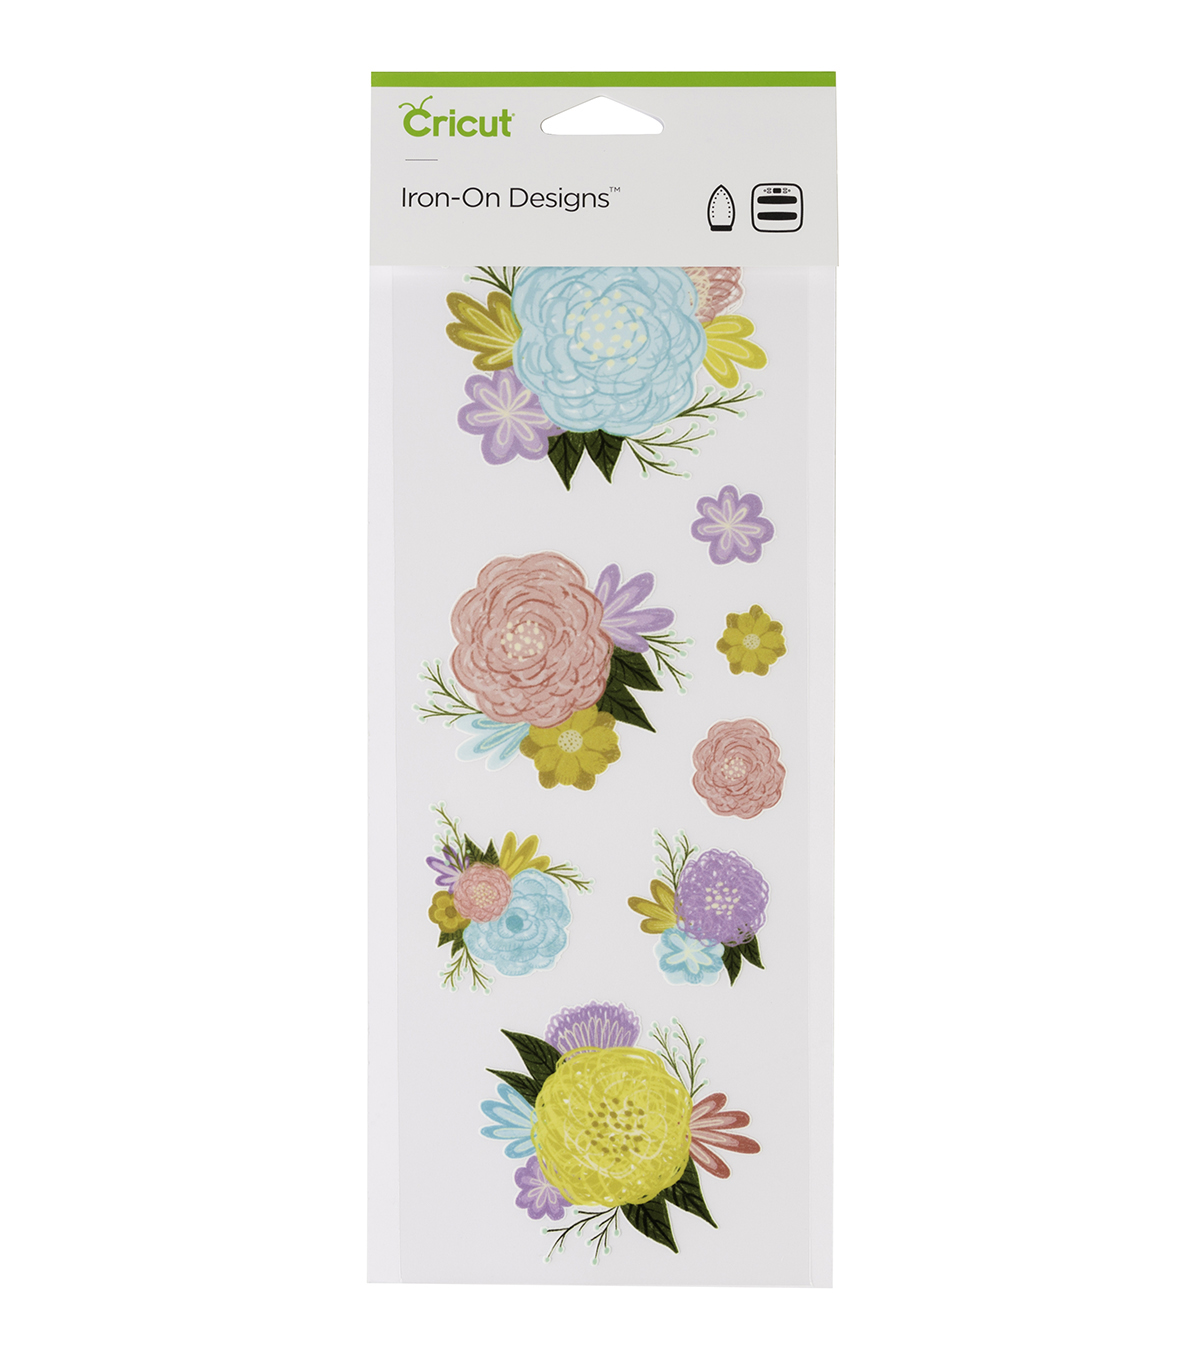 Cricut Small Iron-On Designs-Flowers